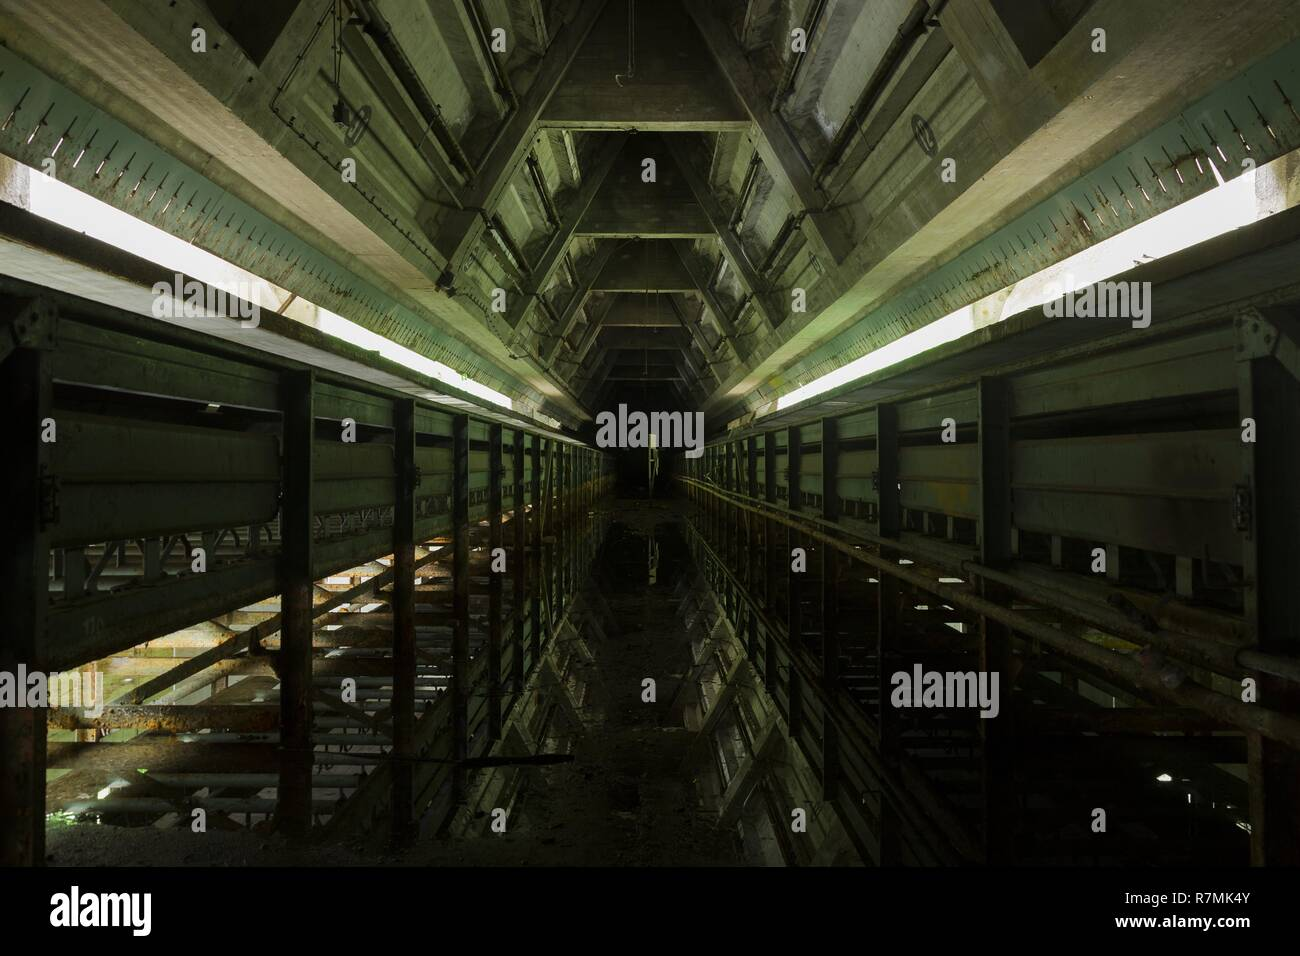 part of an abandoned coal mine, lost places - Stock Image